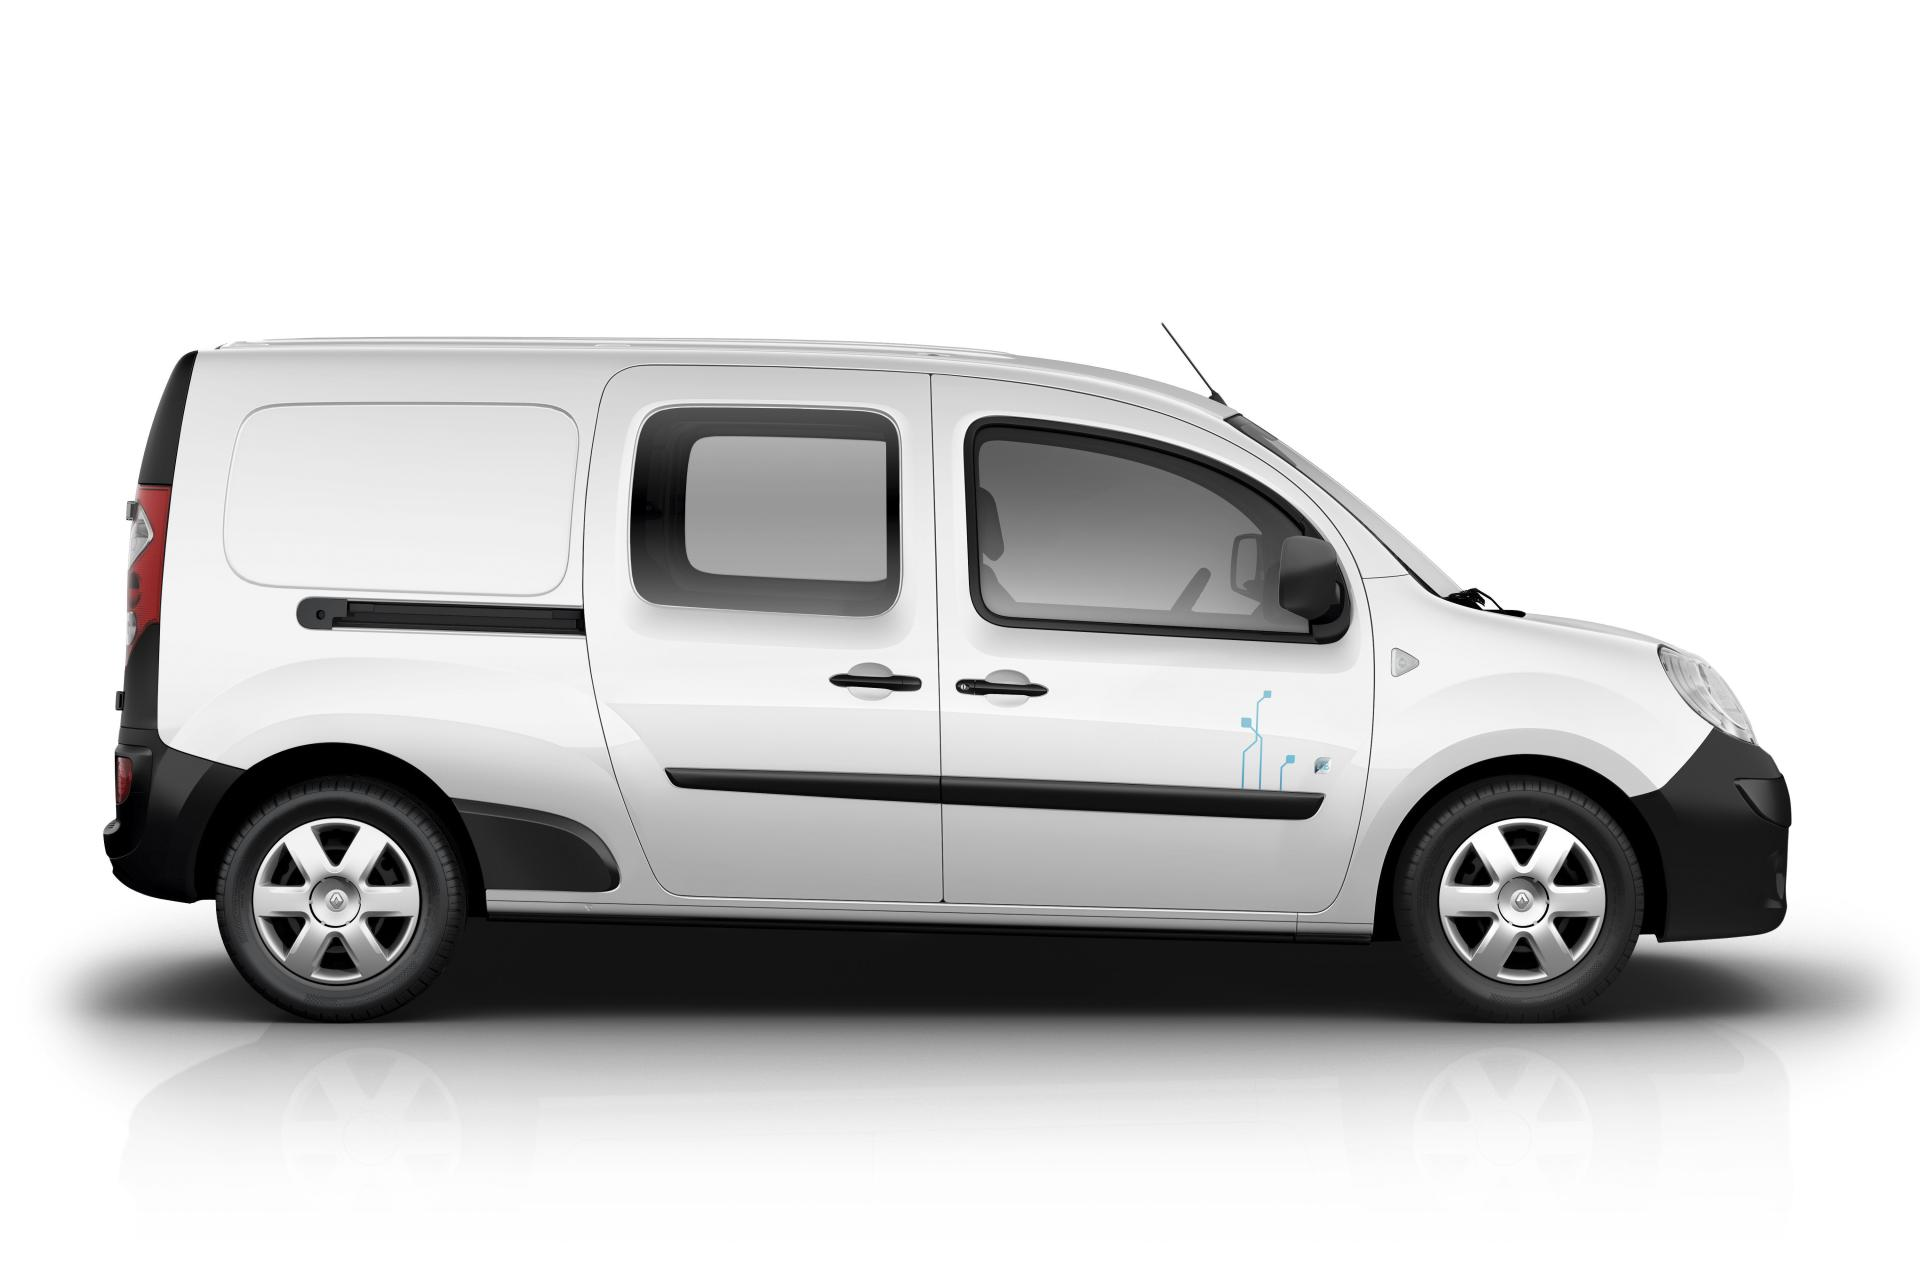 2012 renault kangoo z e images photo renault kangoo ze 2012 image. Black Bedroom Furniture Sets. Home Design Ideas